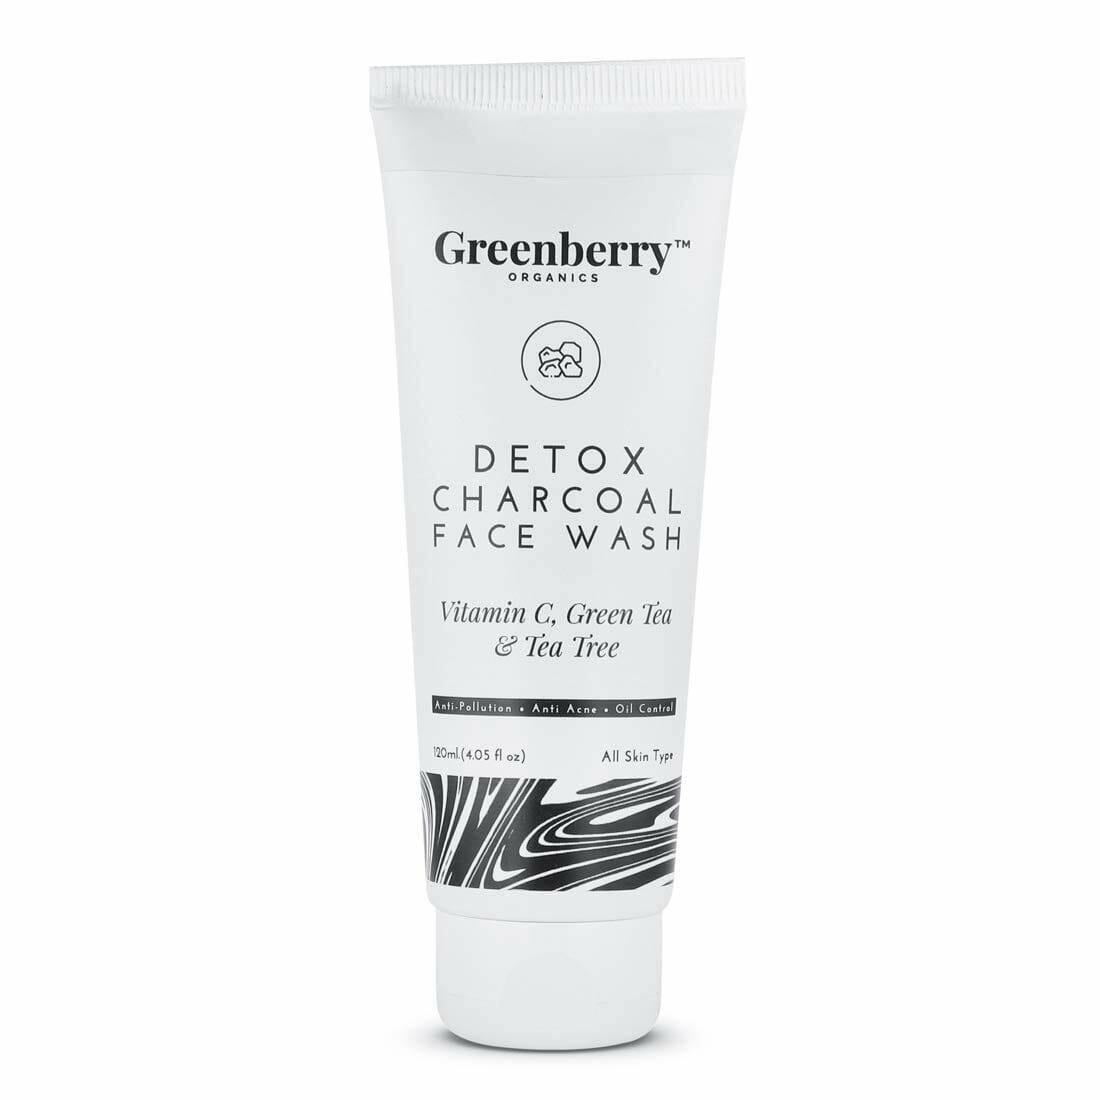 Greenberry Organics Detox Charcoal Face Wash Best Face Wash For Oily Skin In Pakistan